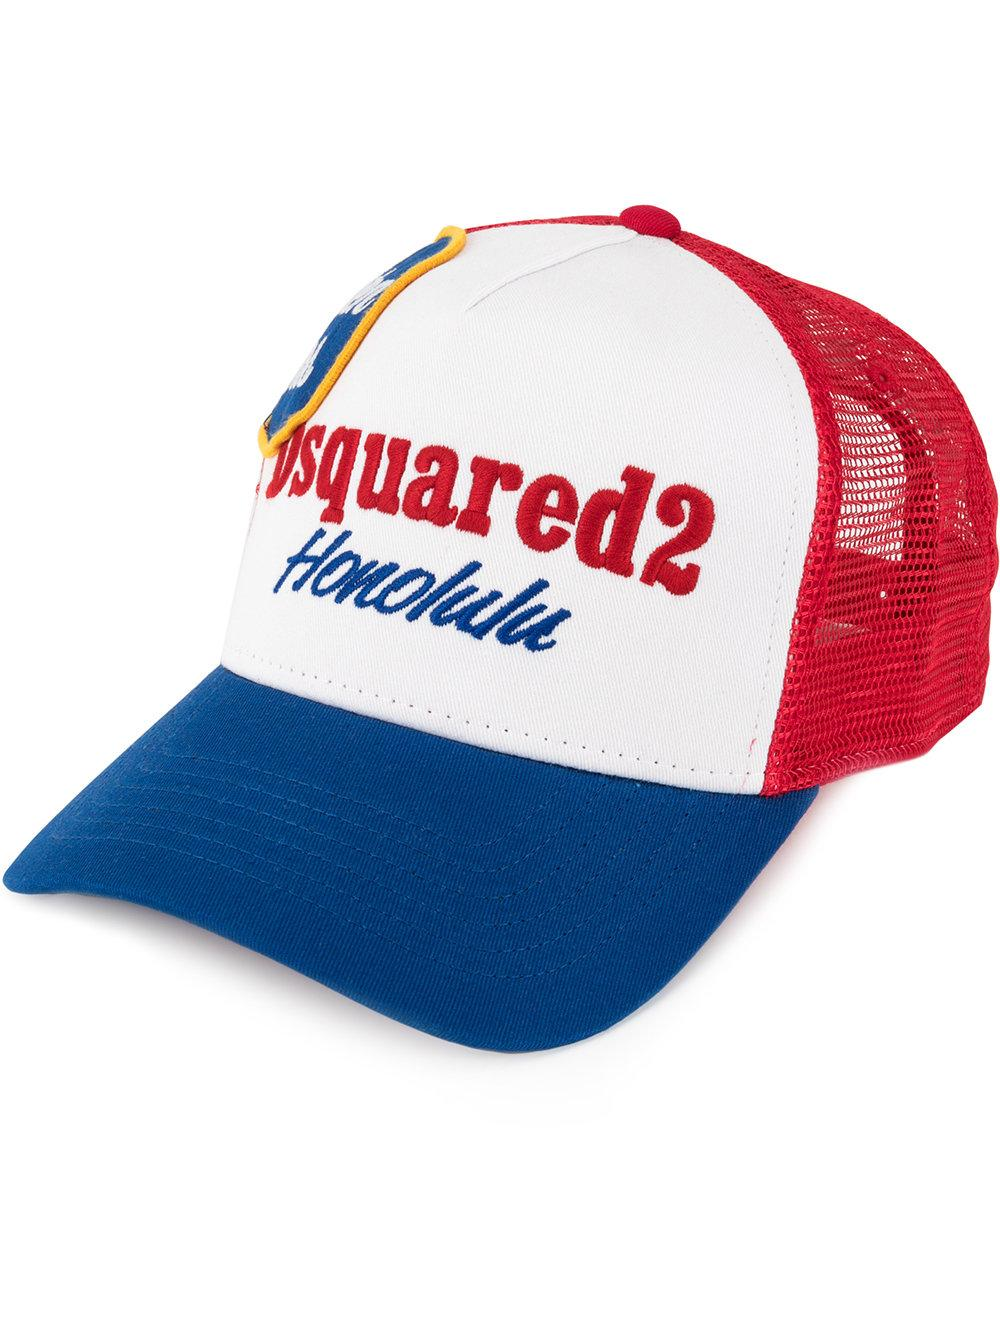 Dsquared2 Honolulu Embroidered Baseball Cap